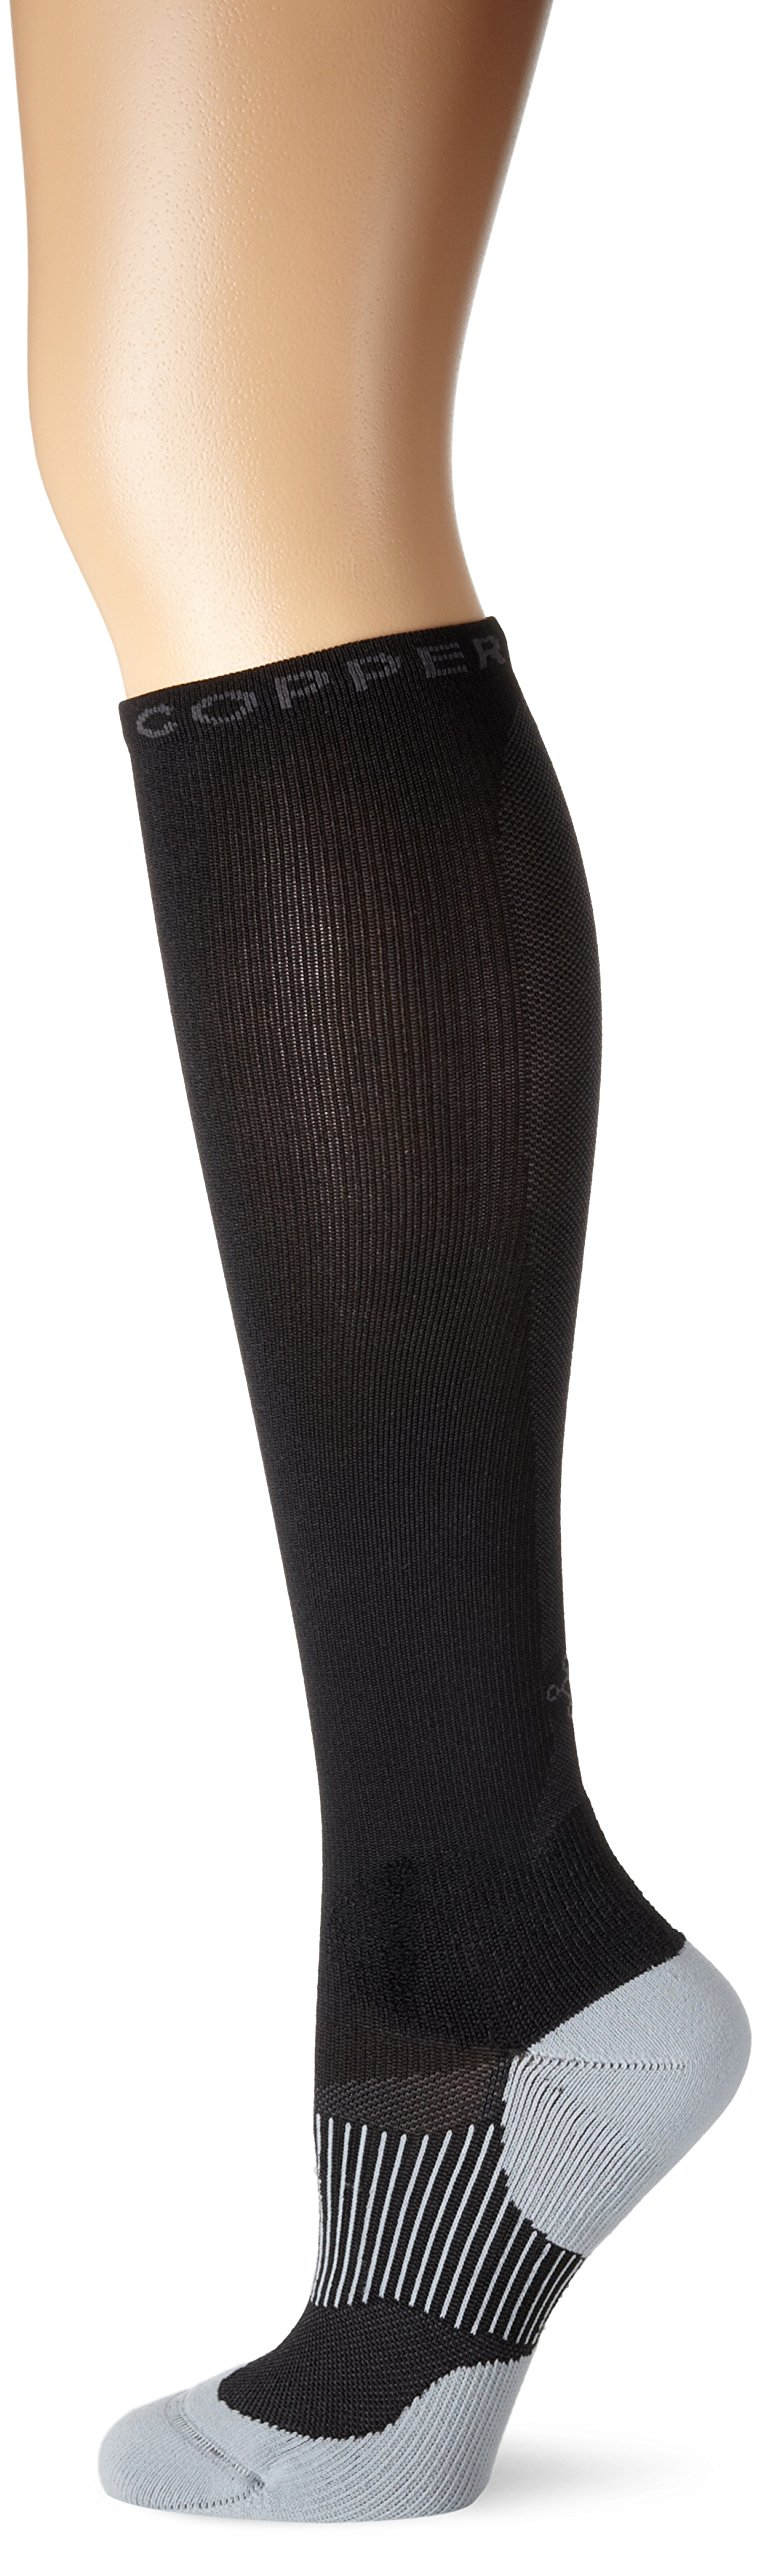 Tommie Copper Women's Performance Compression Over The Calf Socks, Black, 7-9.5 by Tommie Copper